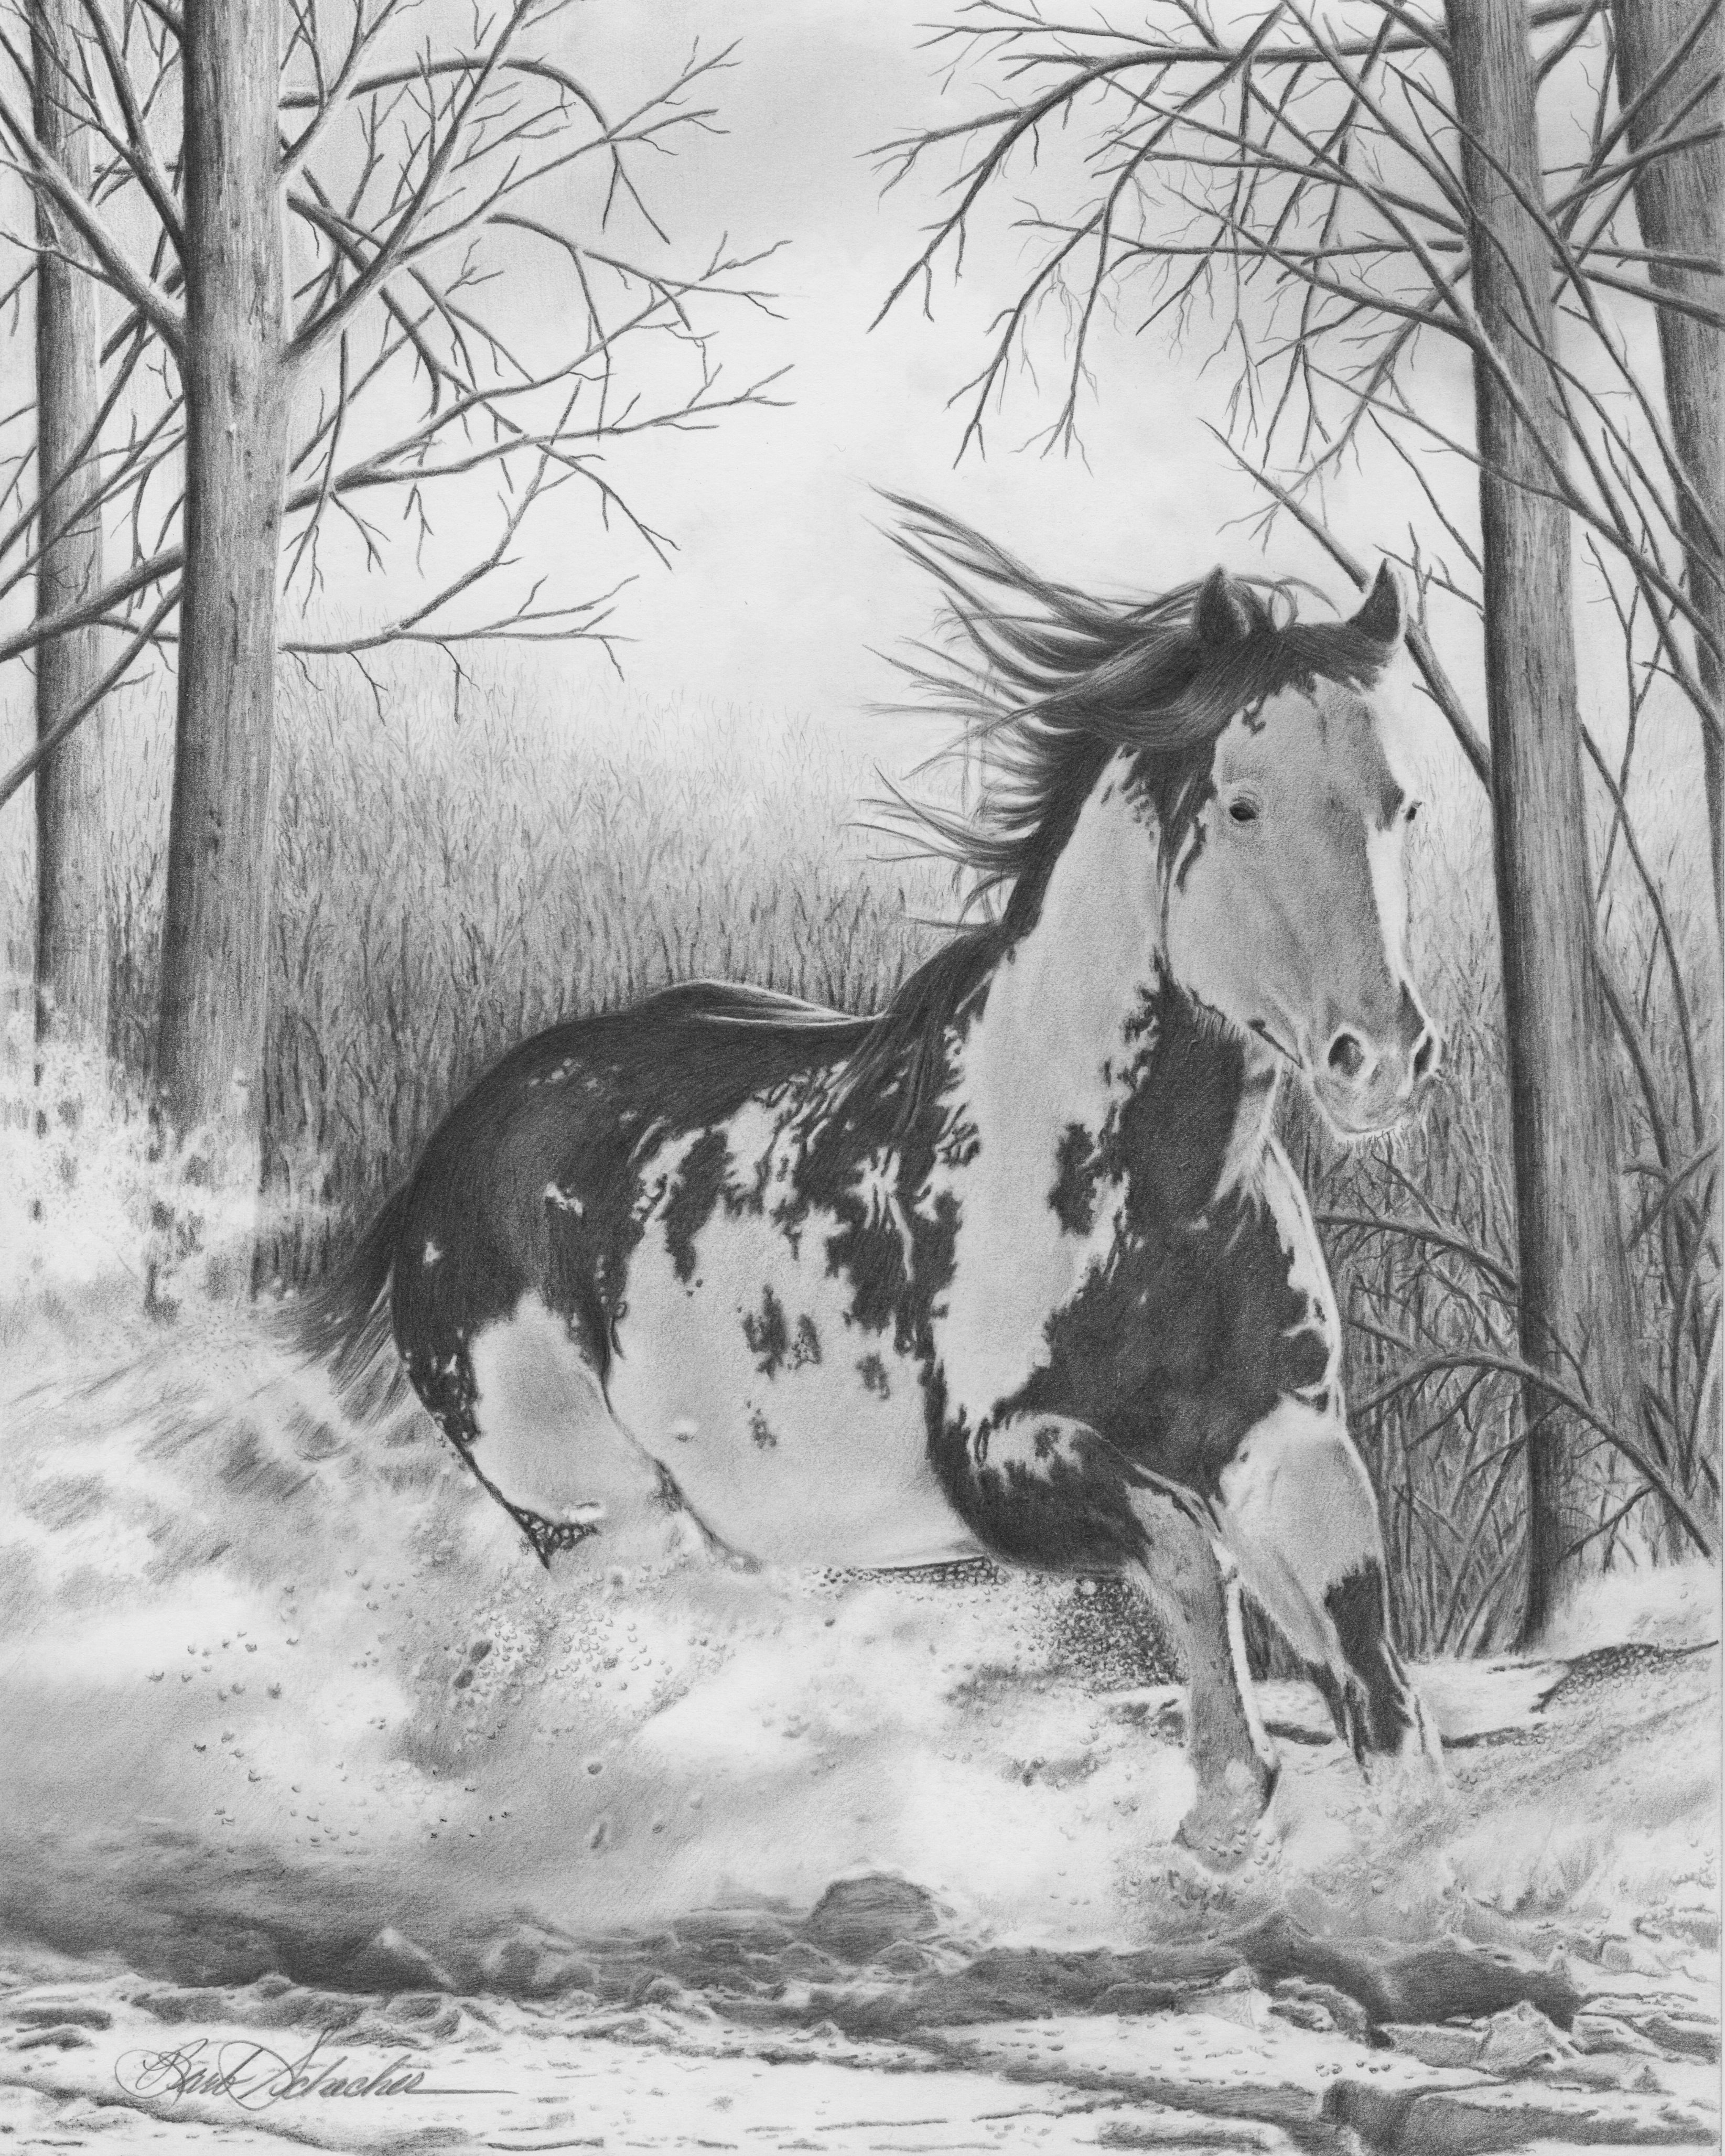 Barb schacher fine art original pencil drawings